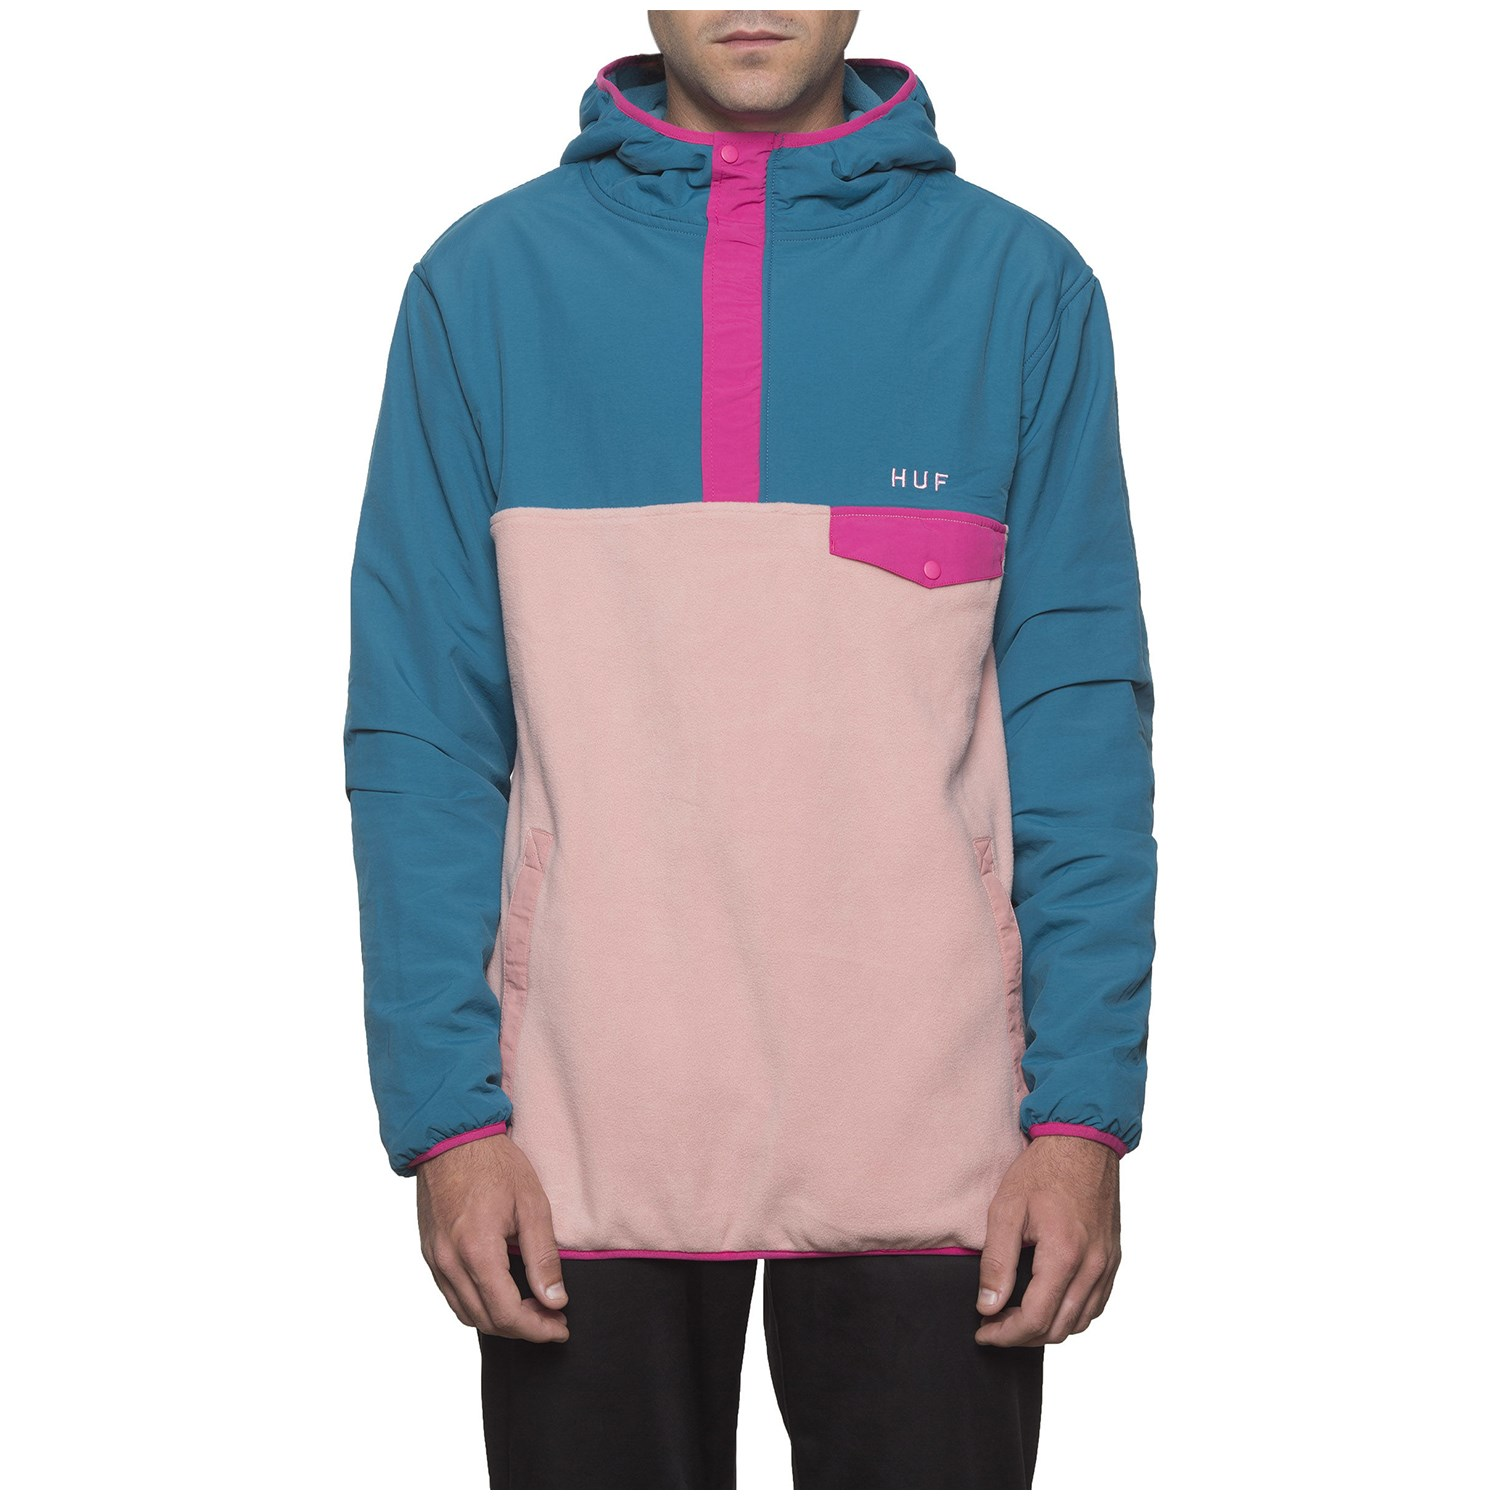 HUF Muir Hooded Pullover Jacket | evo